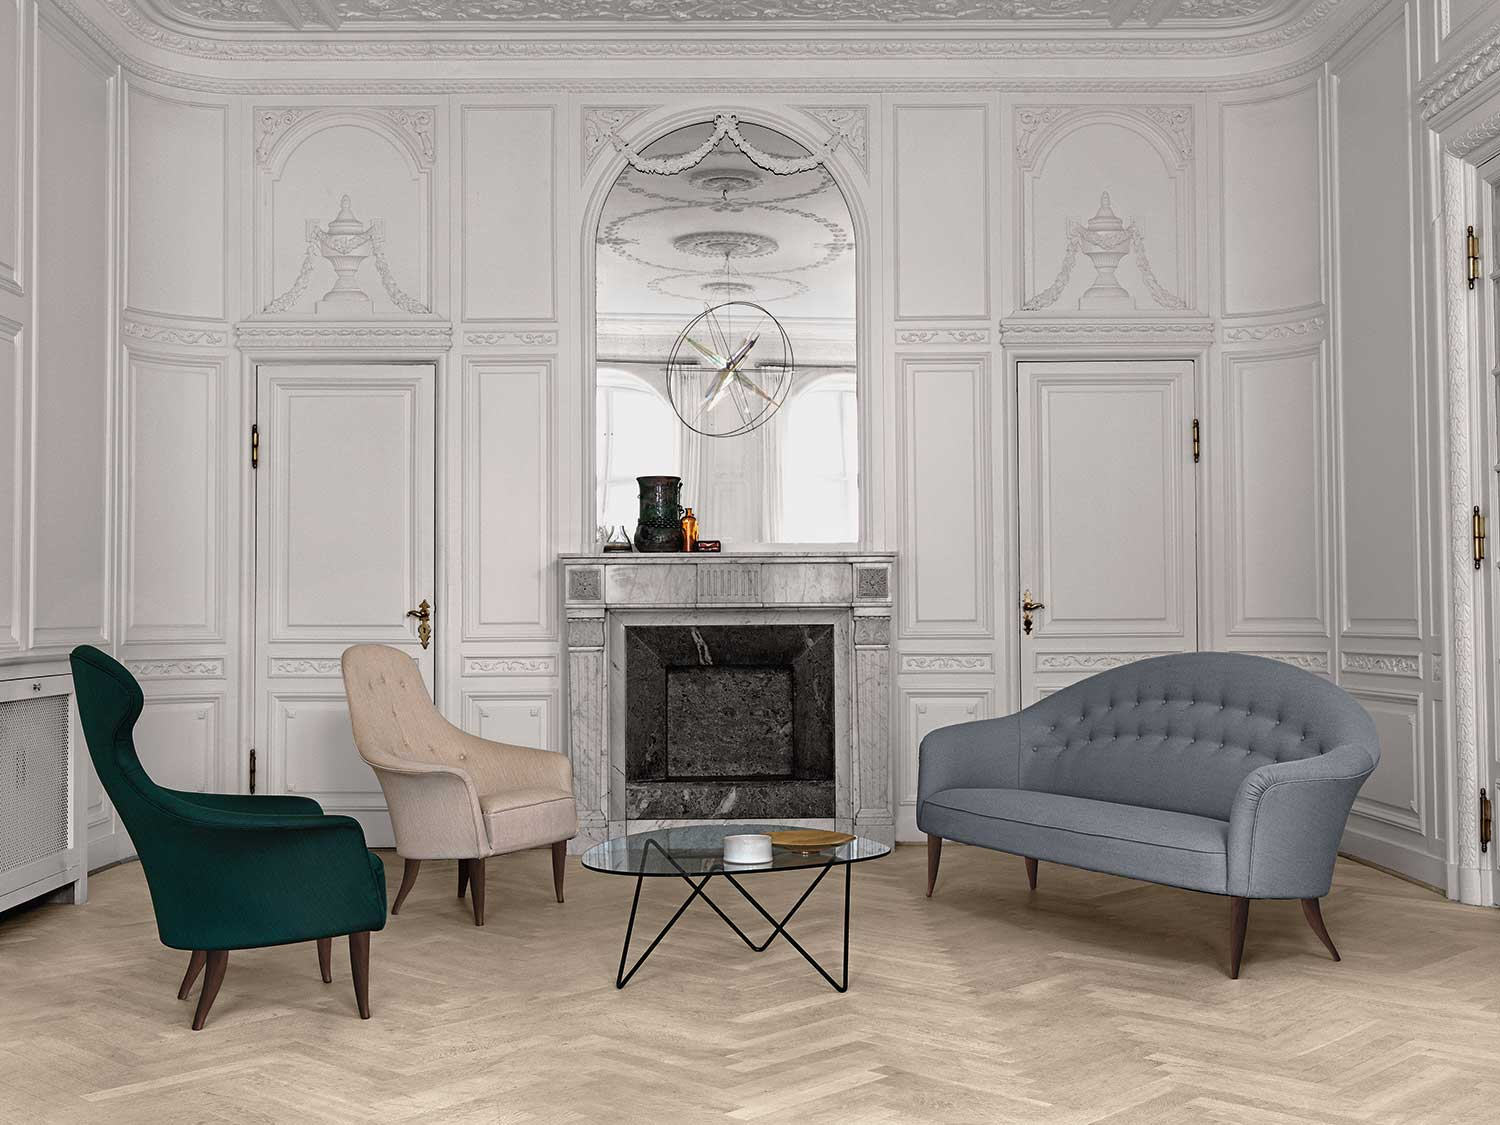 Paradiset Collection re-introduced by Gubi at Maison et Objet 2014 | Yellowtrace